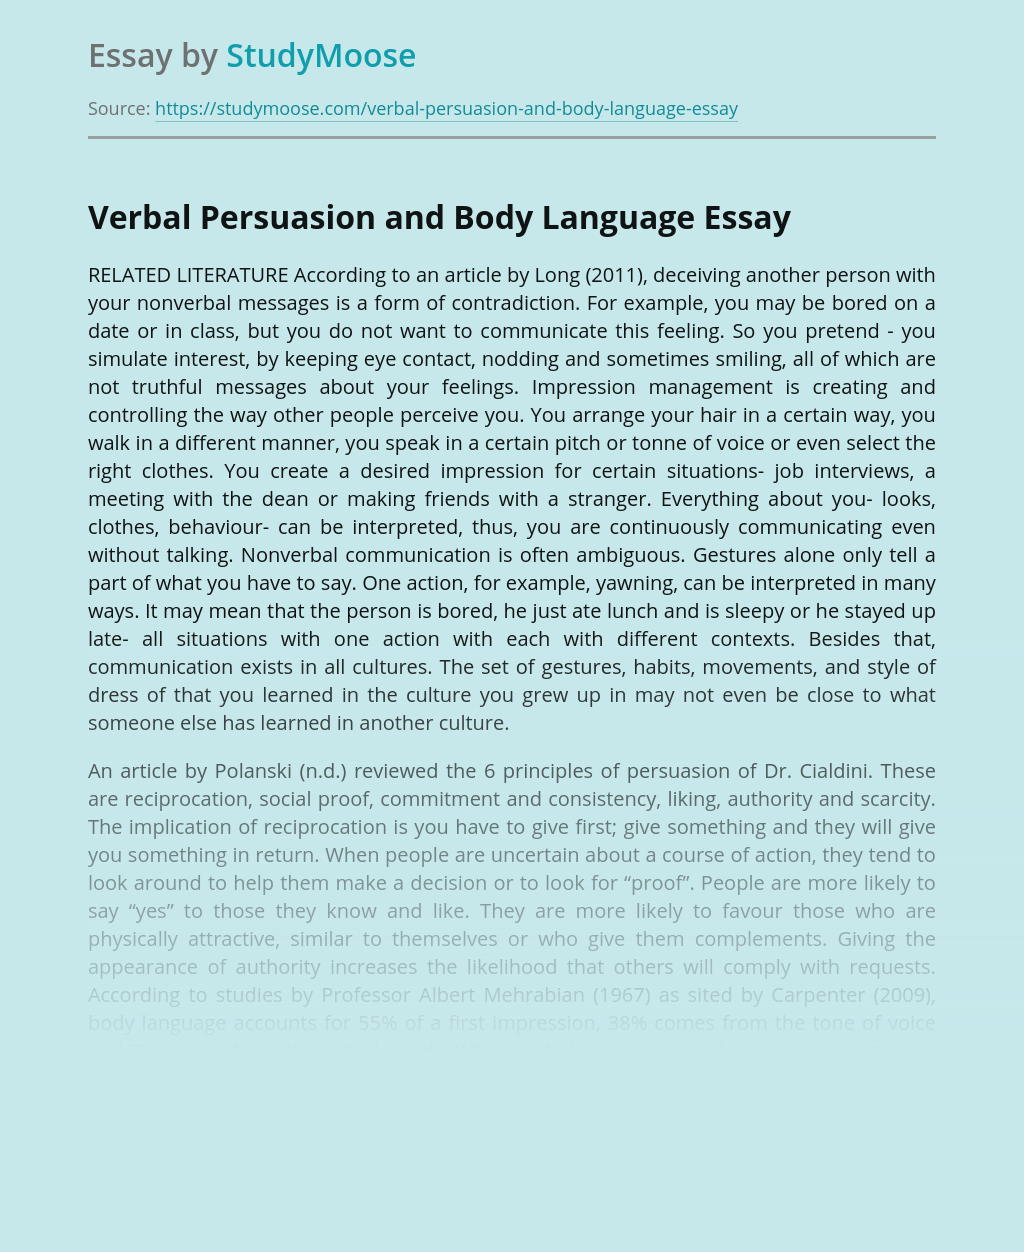 Verbal Persuasion and Body Language